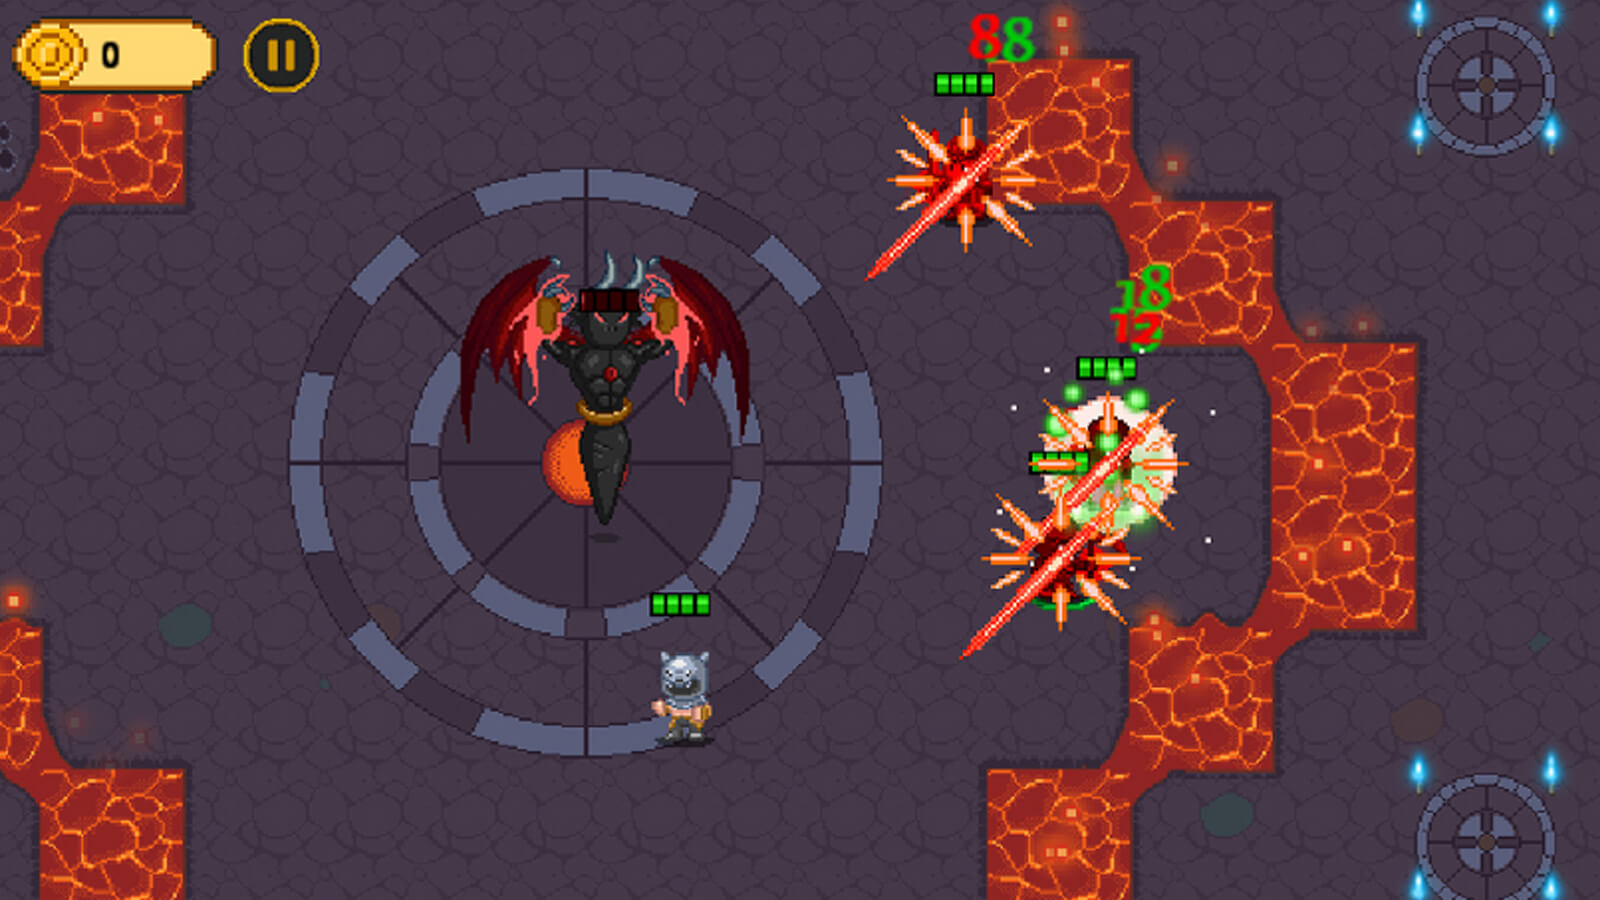 The player's character fights a black, winged demonic enemy in a dark, lava-filled dungeon